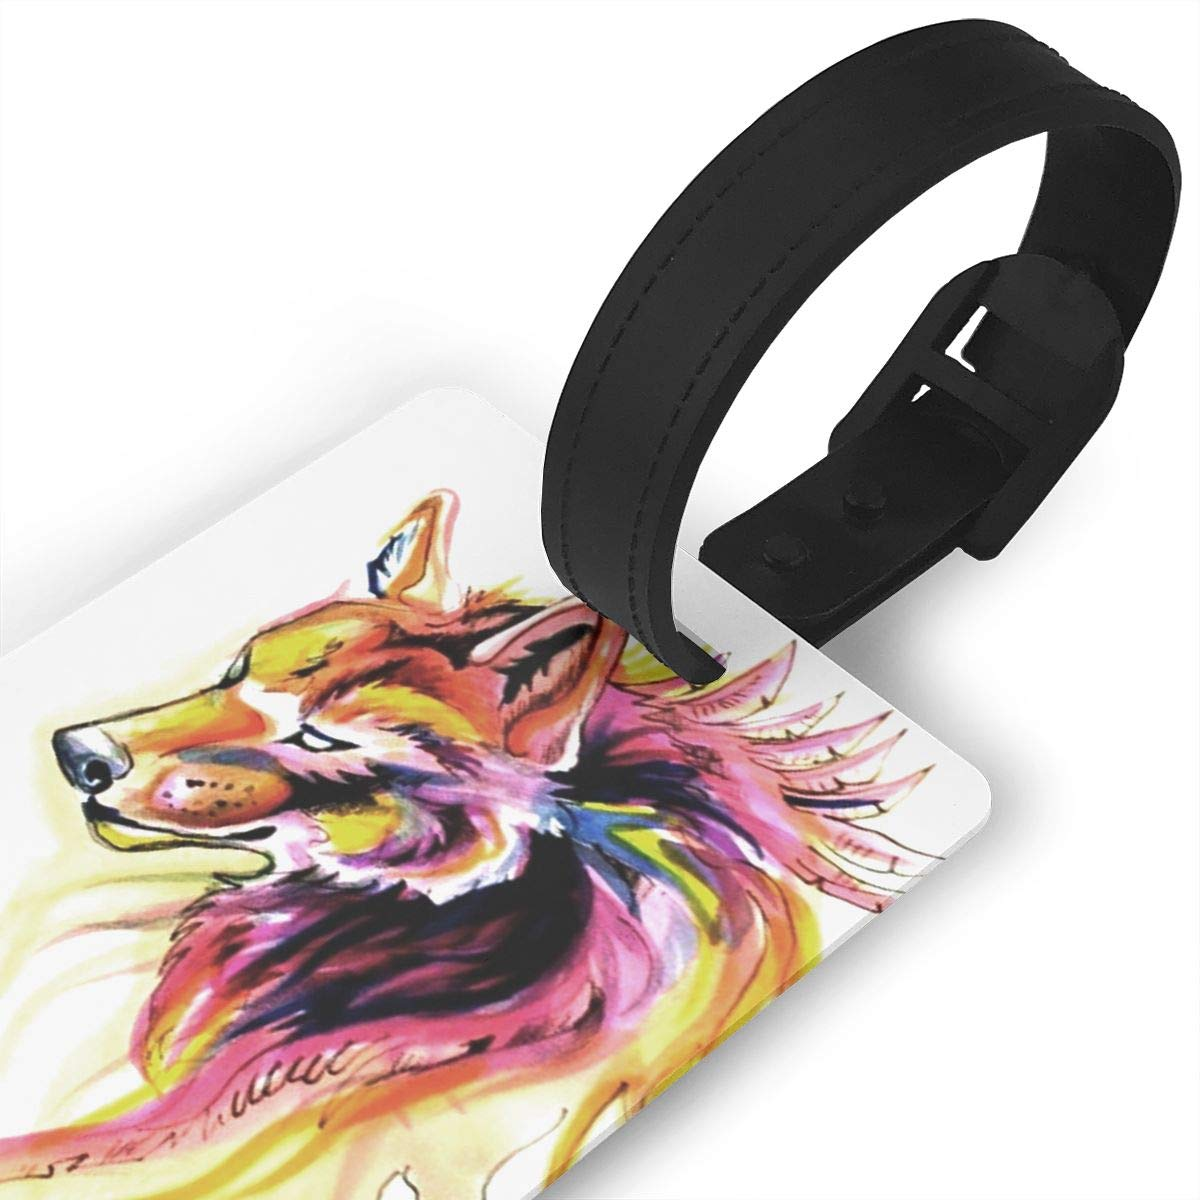 Wolf Handbag Tag For Suitcase Bag Accessories 2 Pack Luggage Tags